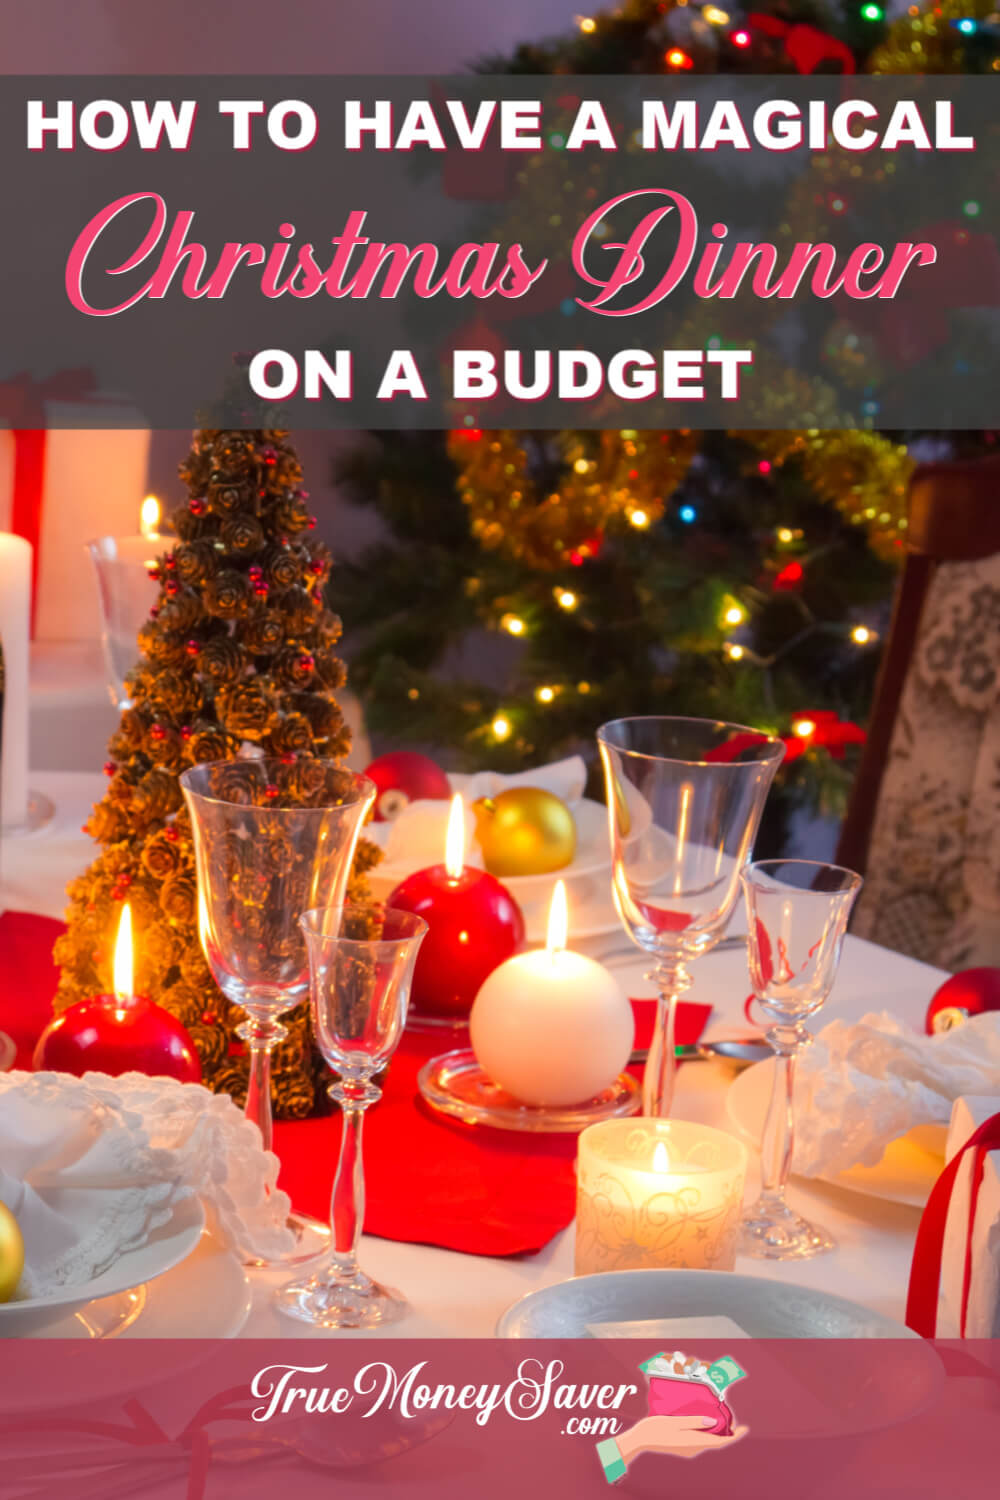 Keep your Christmas dinner on a budget with these great tips! Just follow these budget Christmas dinner ideas and cheap holiday dinner ideas to stay on budget! Plus, I\'ve got some great tips for keeping it a magical dinner with more cheap Christmas dinner menu ideas! #truemoneysaver #christmas  #christmasdinner  #budget  #budgeting #frugalmeals #frugal #frugalmealideas #christmasdinneronabudget #dinneronabudget #budgetdinner